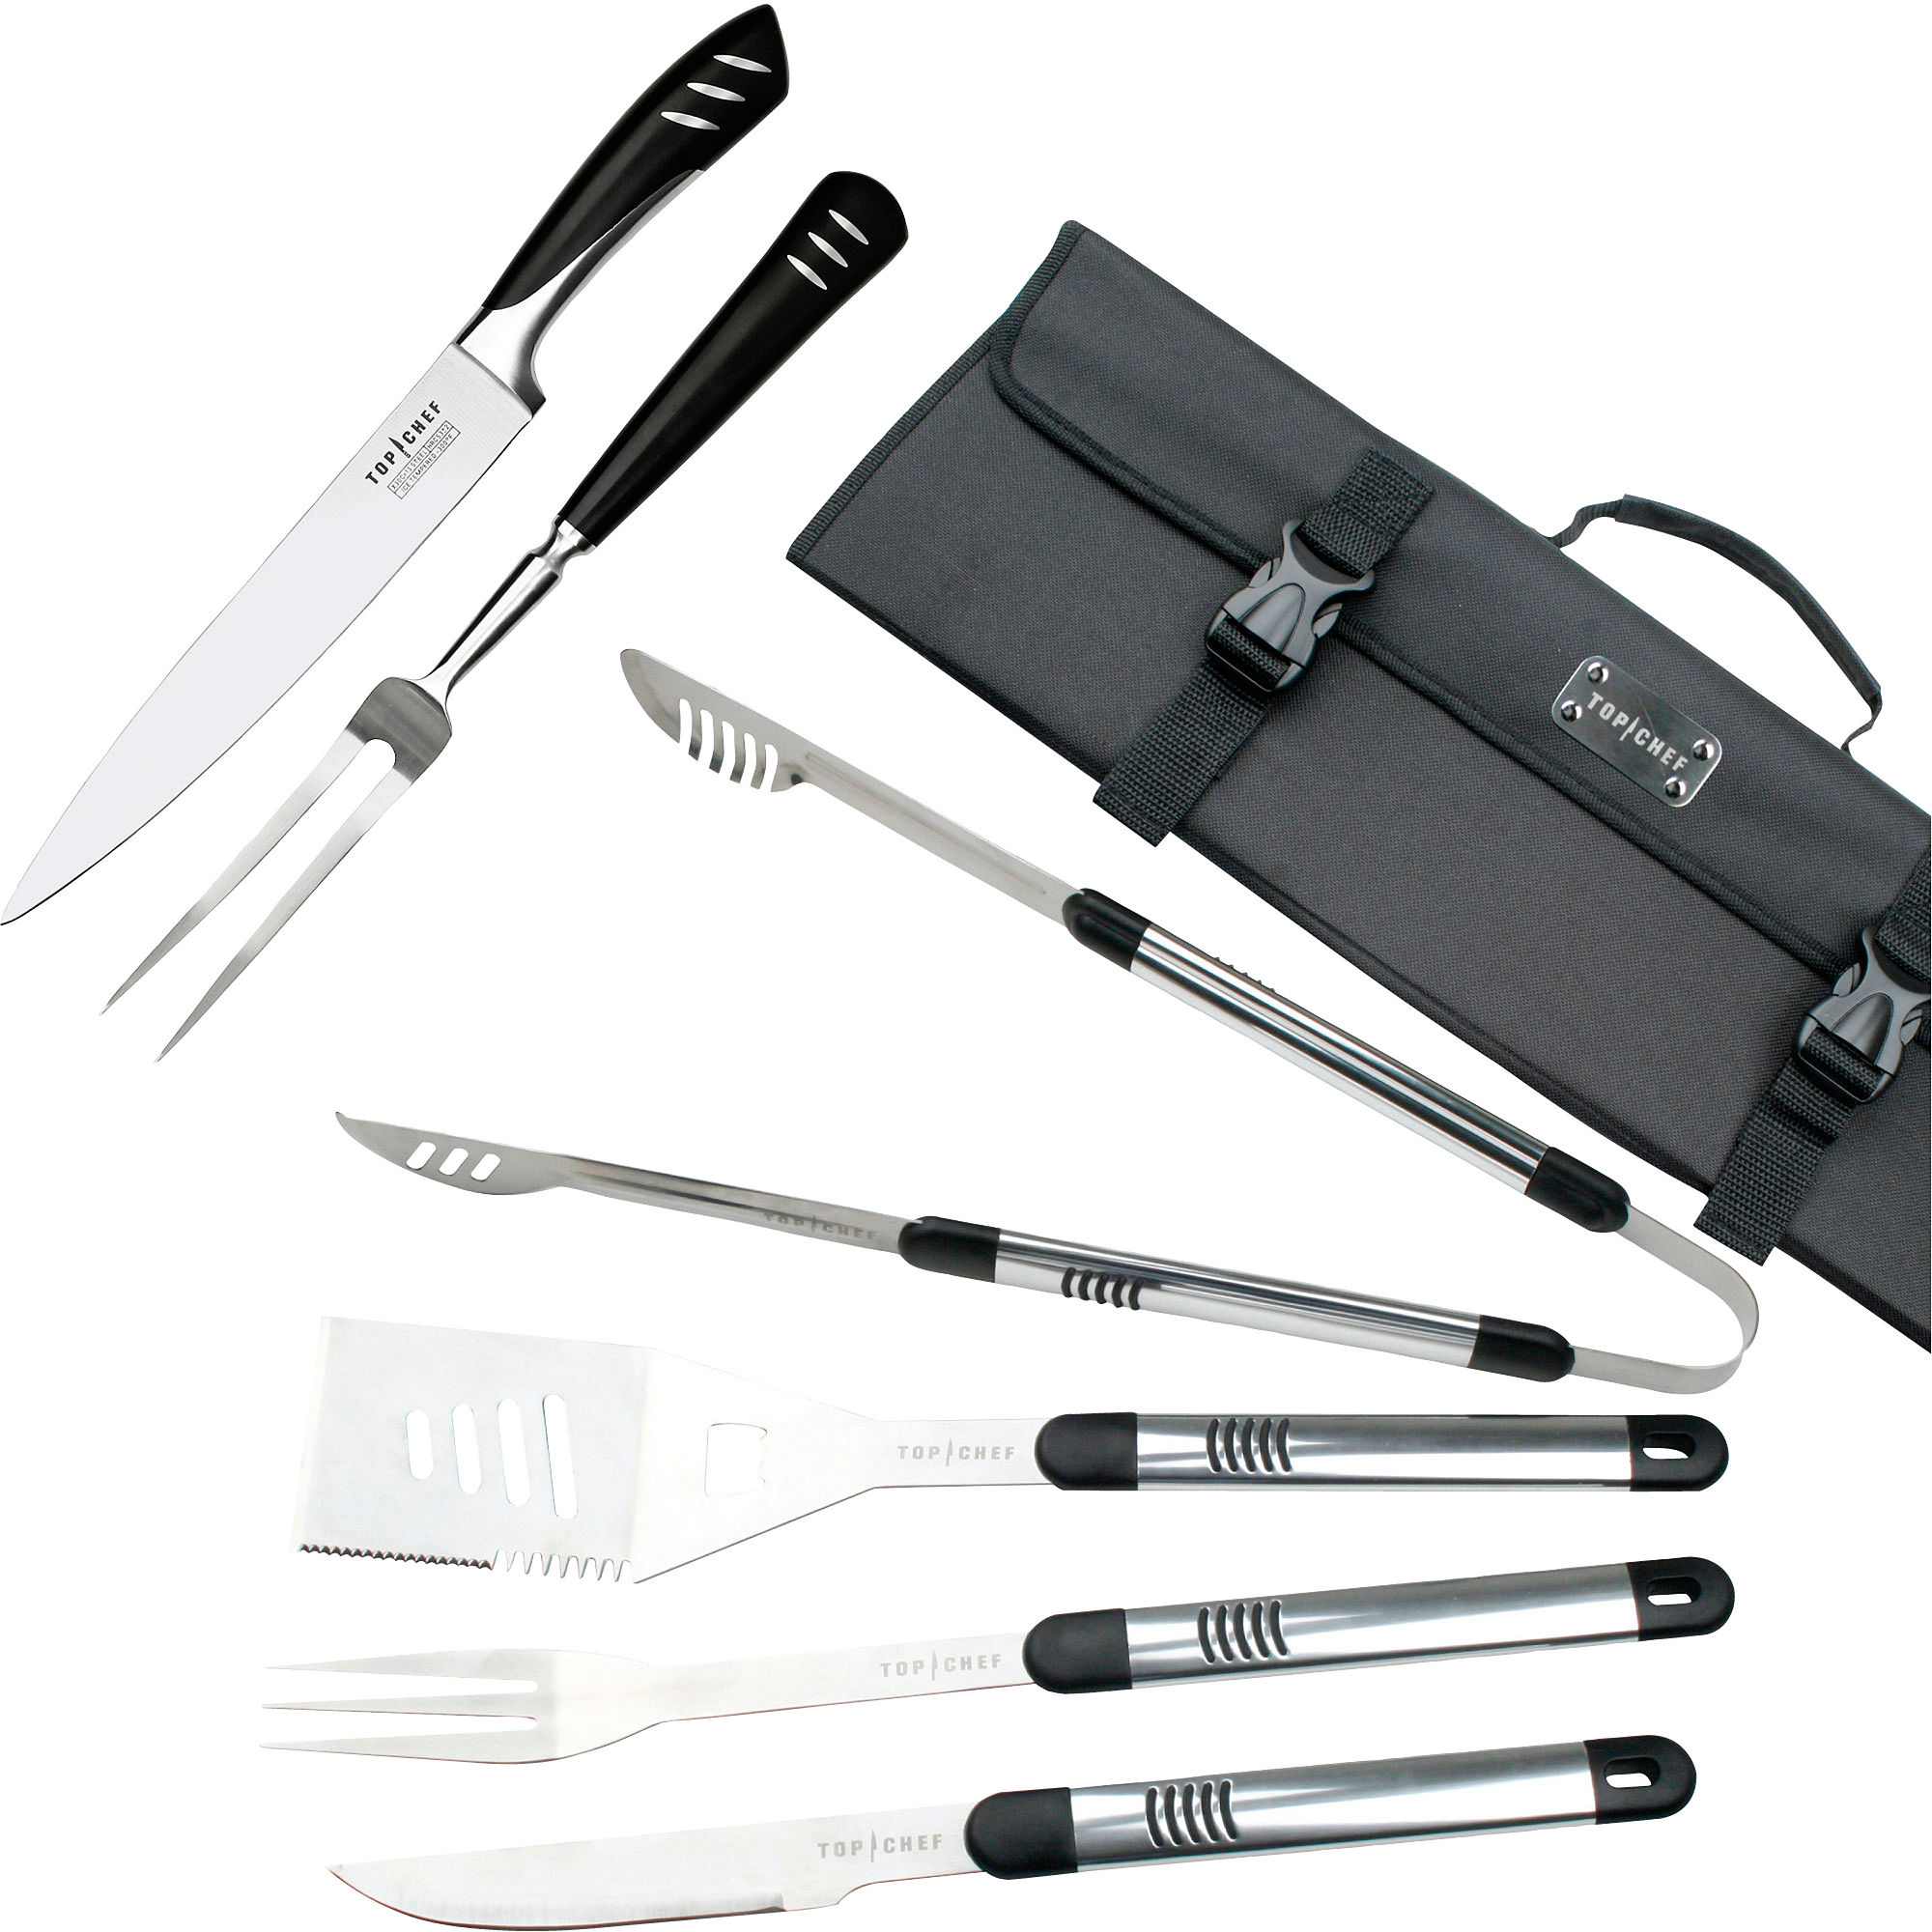 Full cutlery sets top chef pc stainless steel